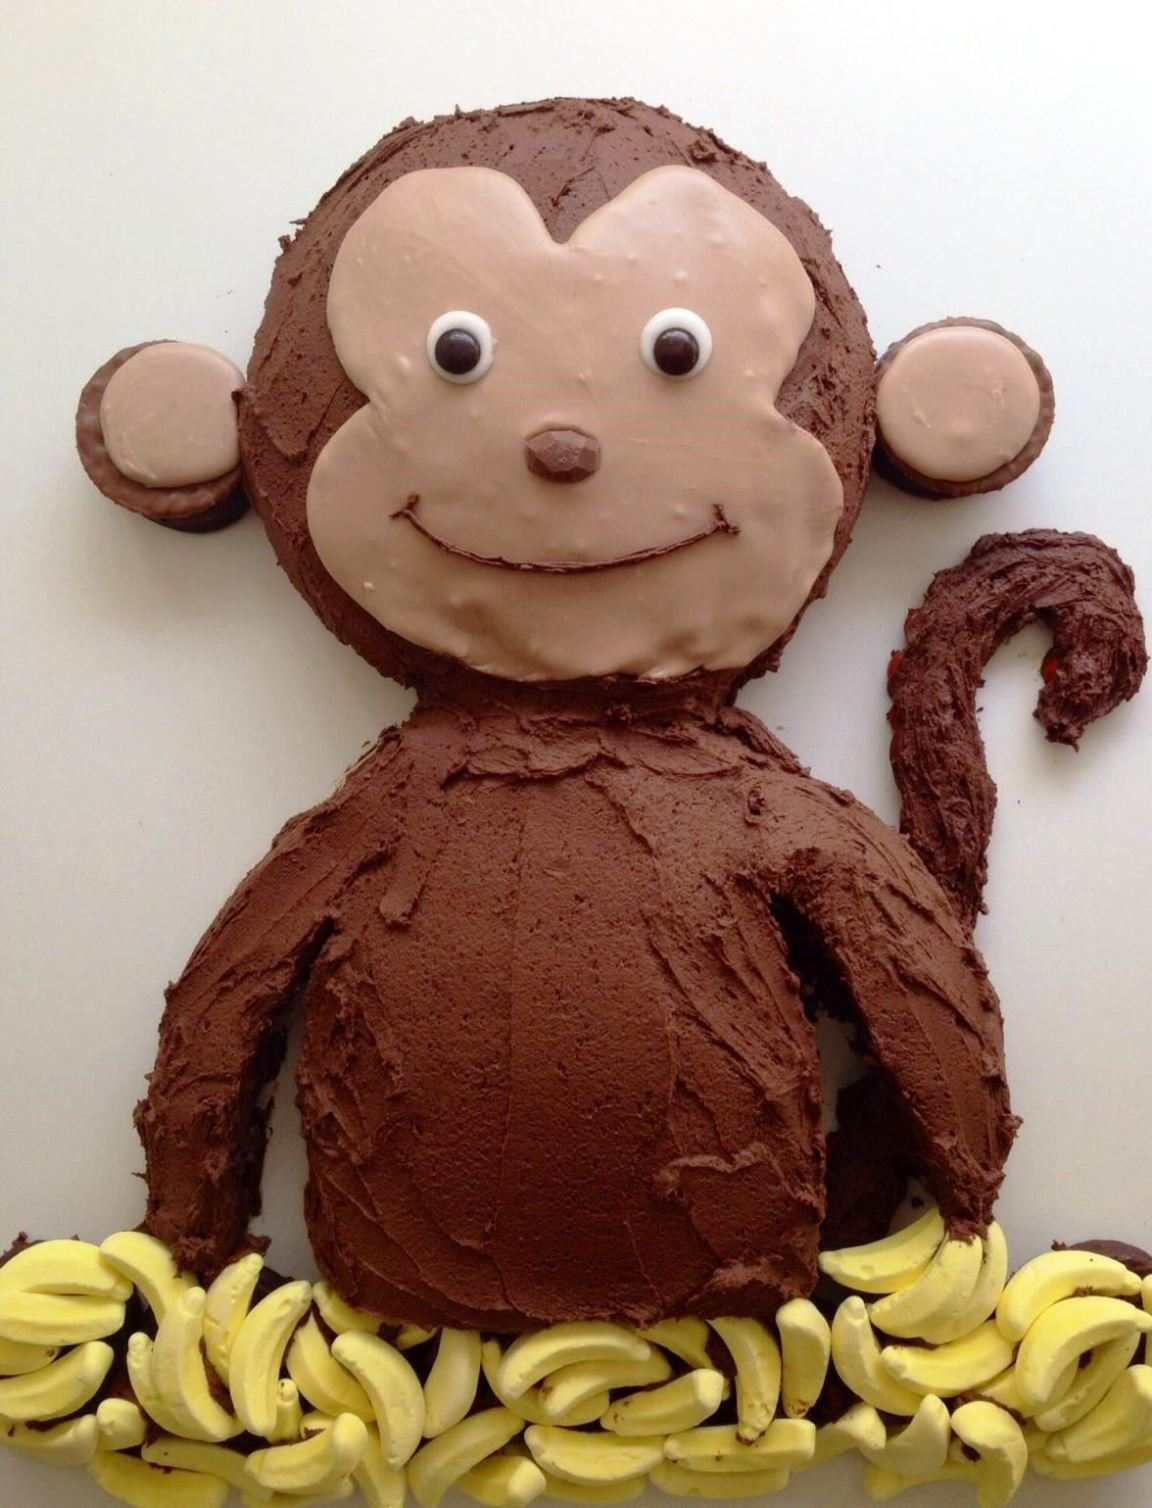 Monkey birthday cake template sampletemplatess for Monkey birthday cake template